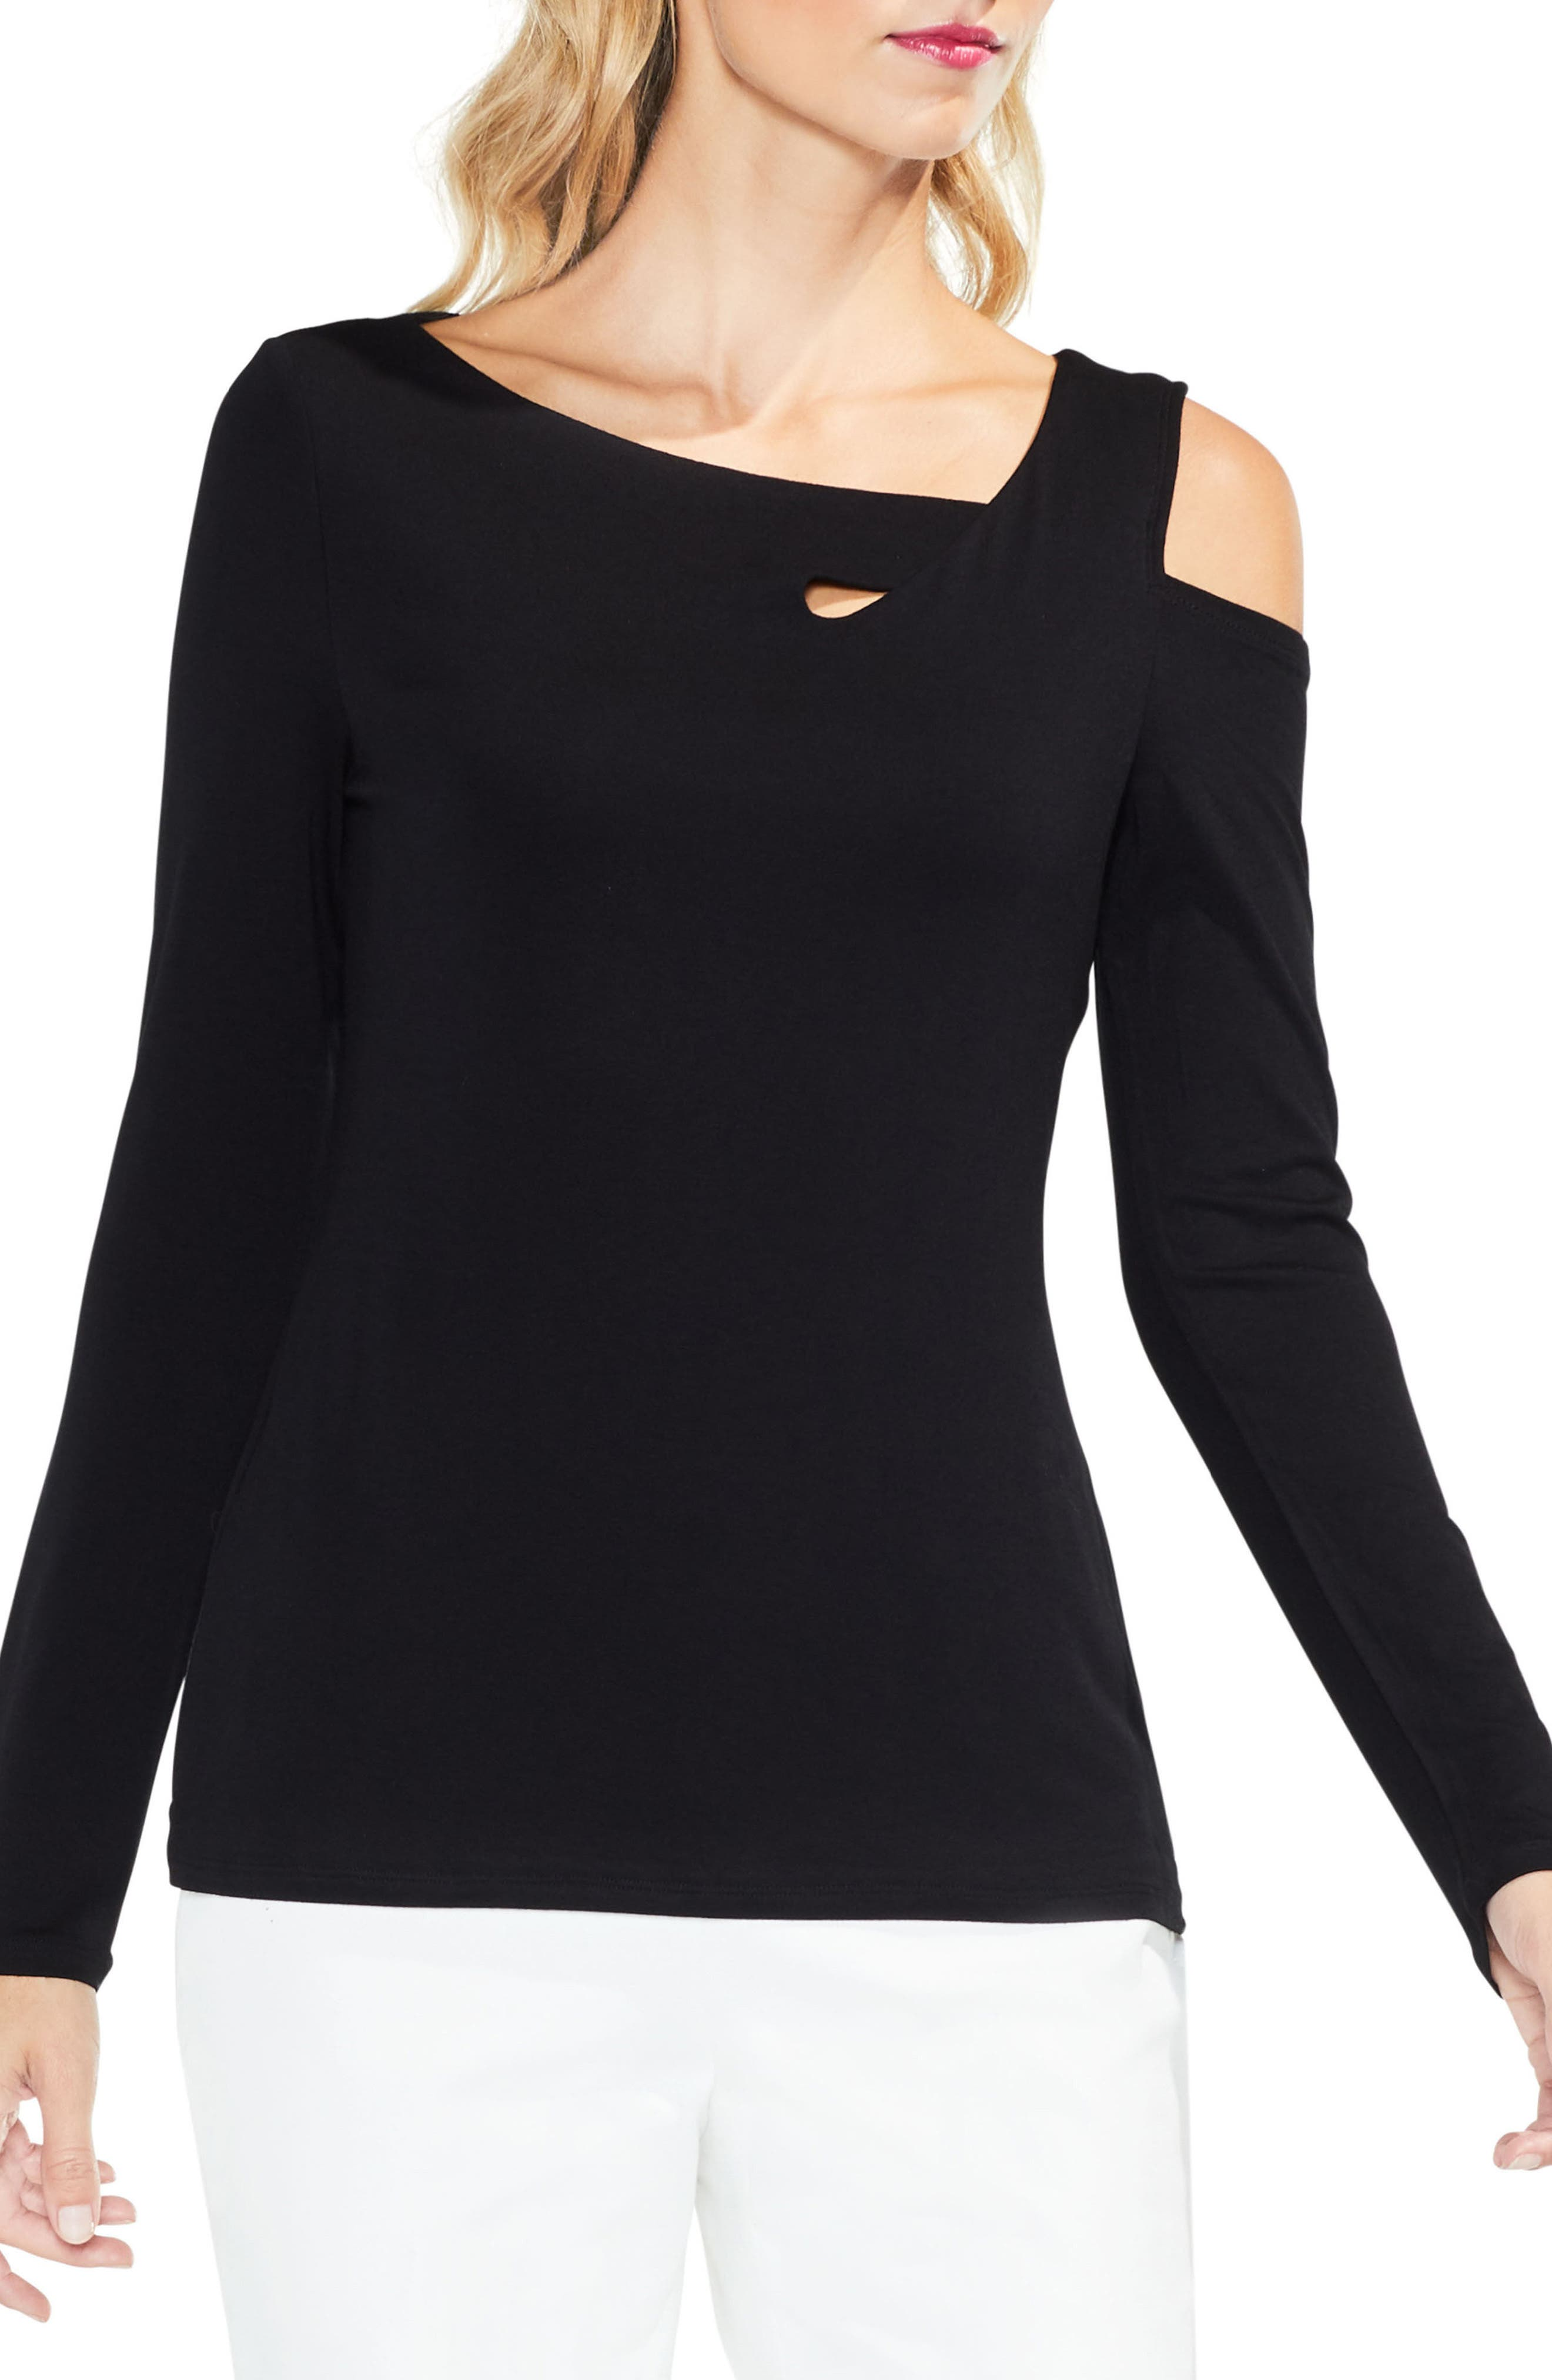 Twisted One Shoulder Top,                             Main thumbnail 1, color,                             006